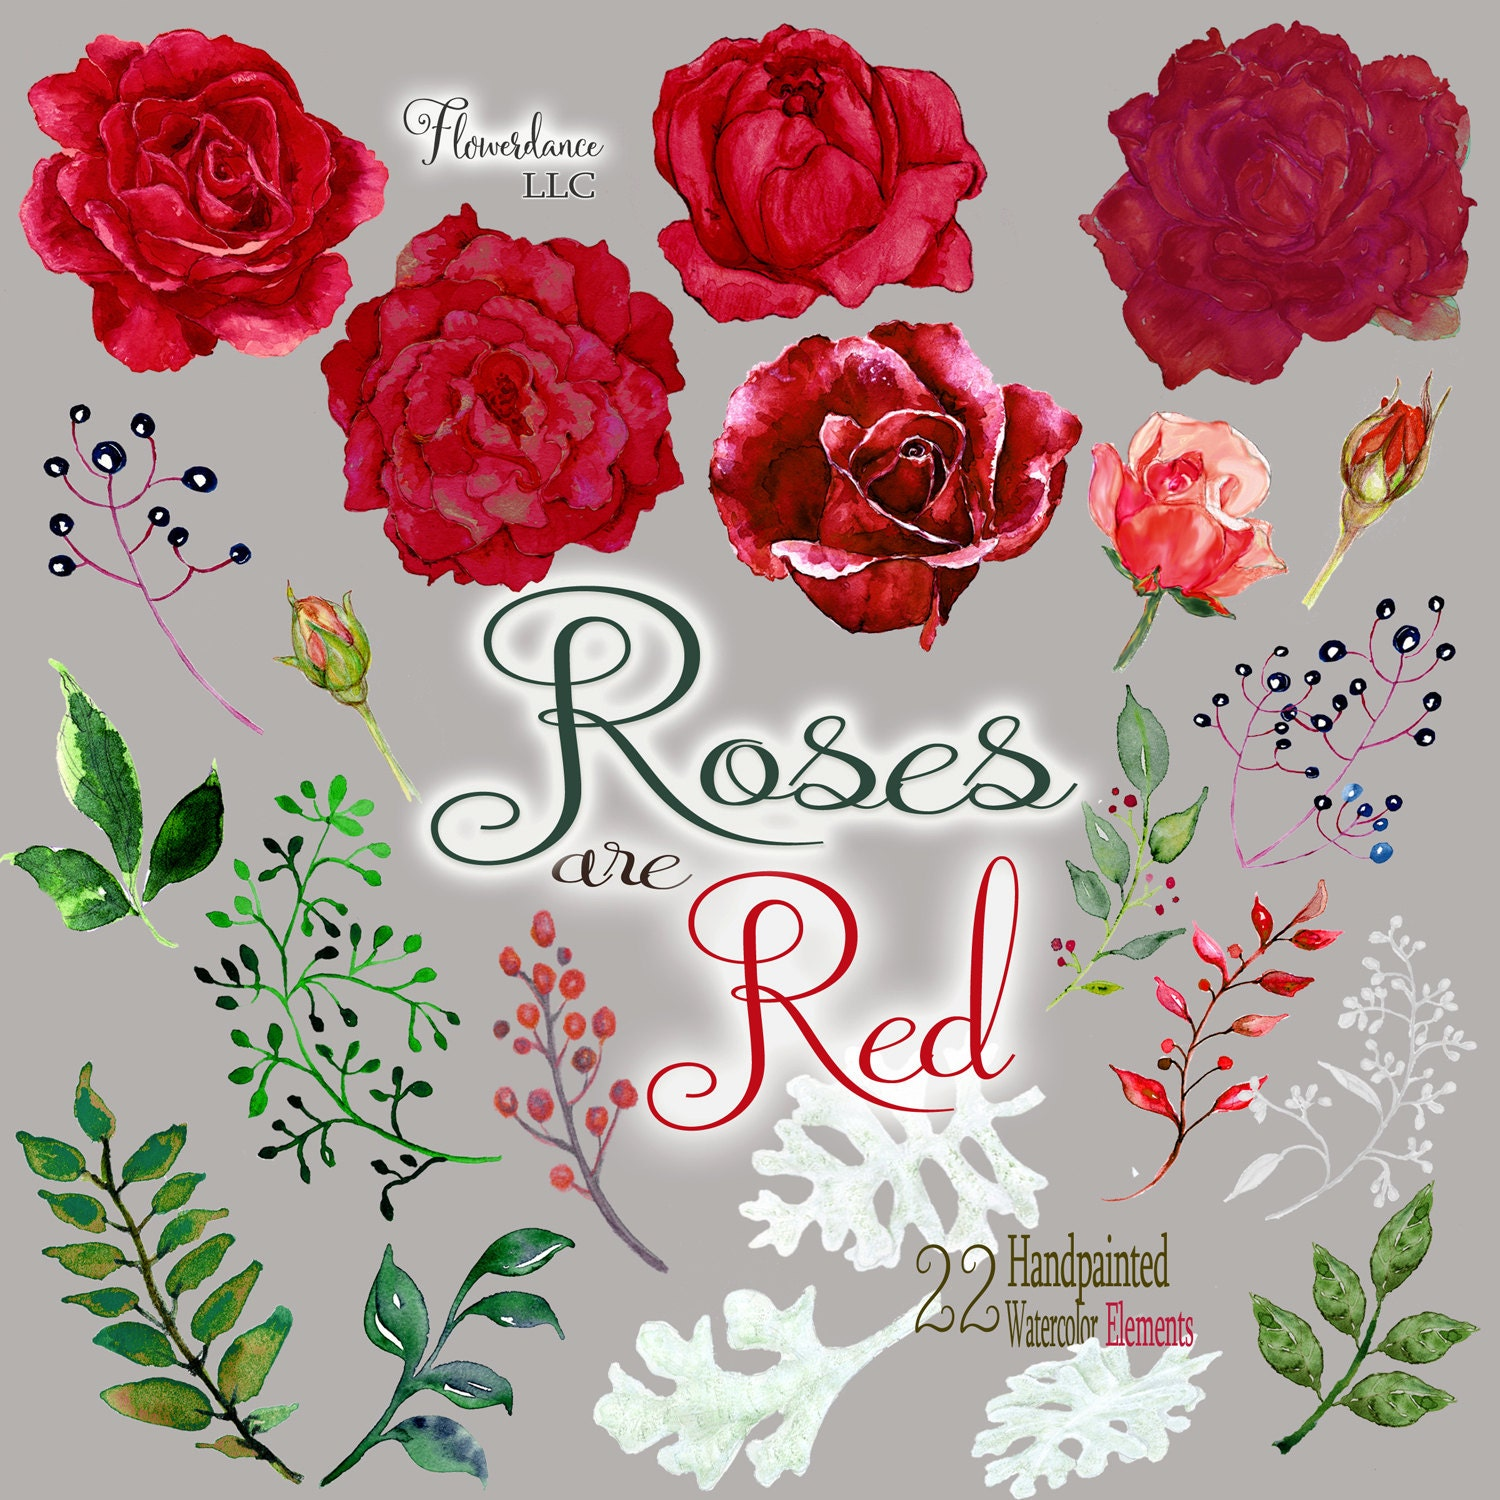 Red roses clipart floral clip art watercolor English rose ...